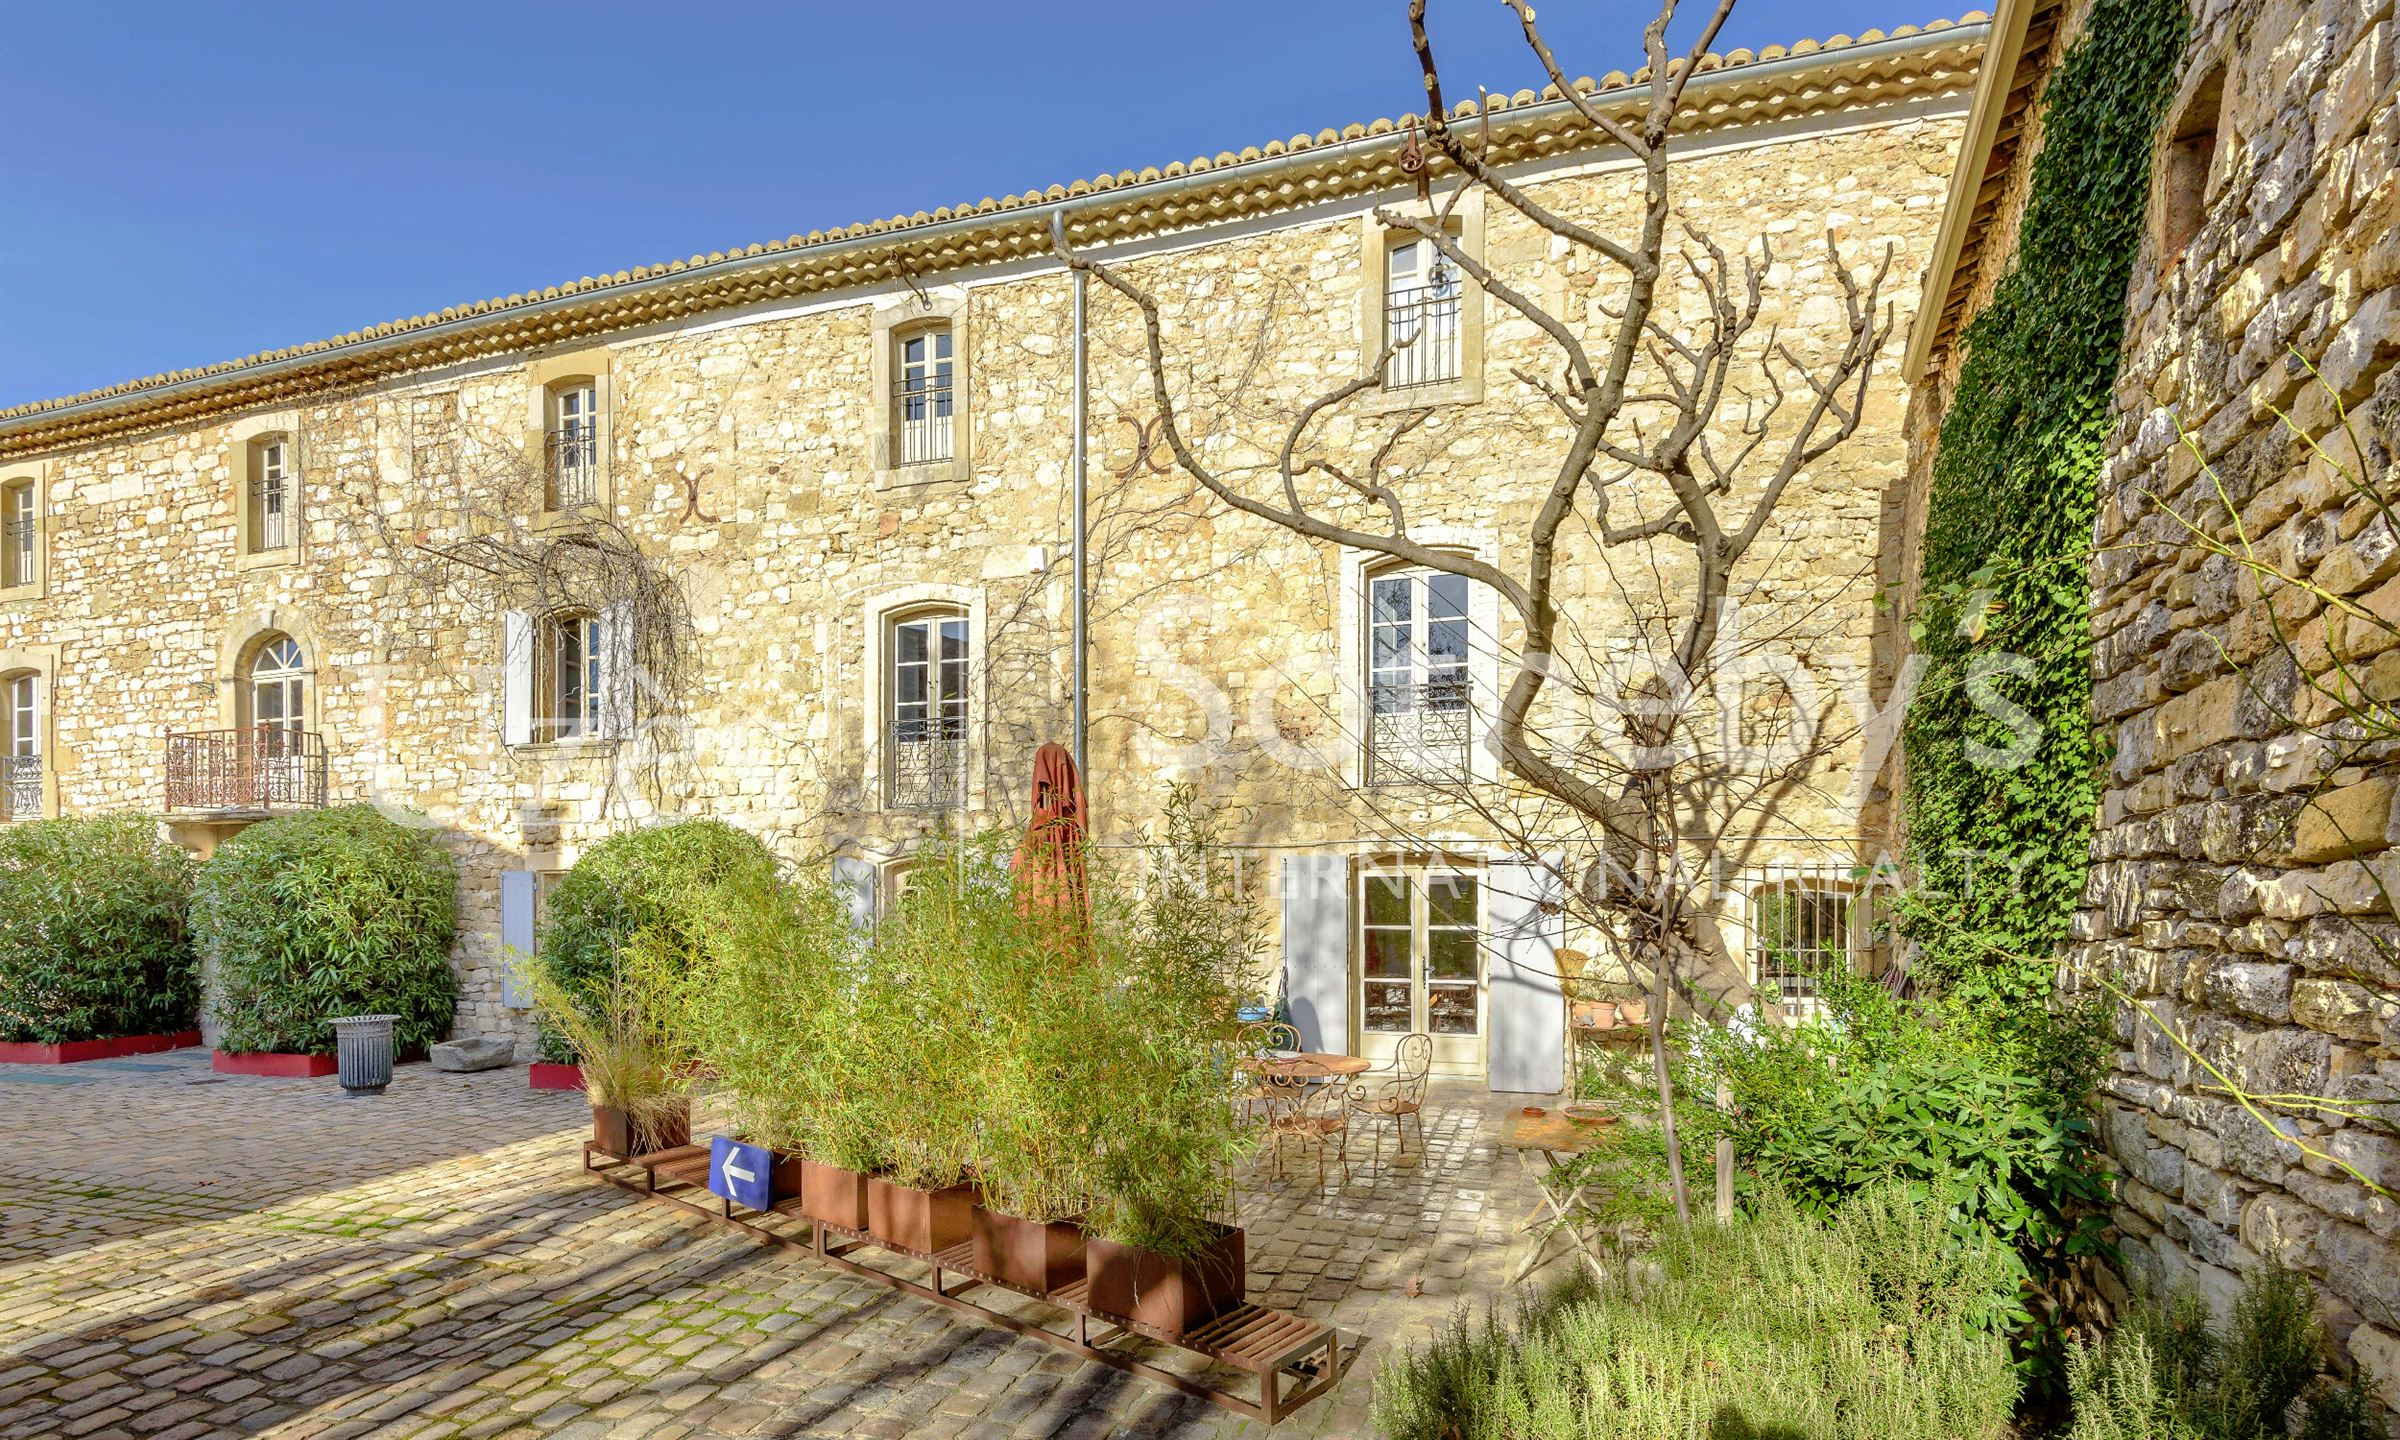 Property For Sale at NEAR UZES, EXCEPTIONAL PROPERTY